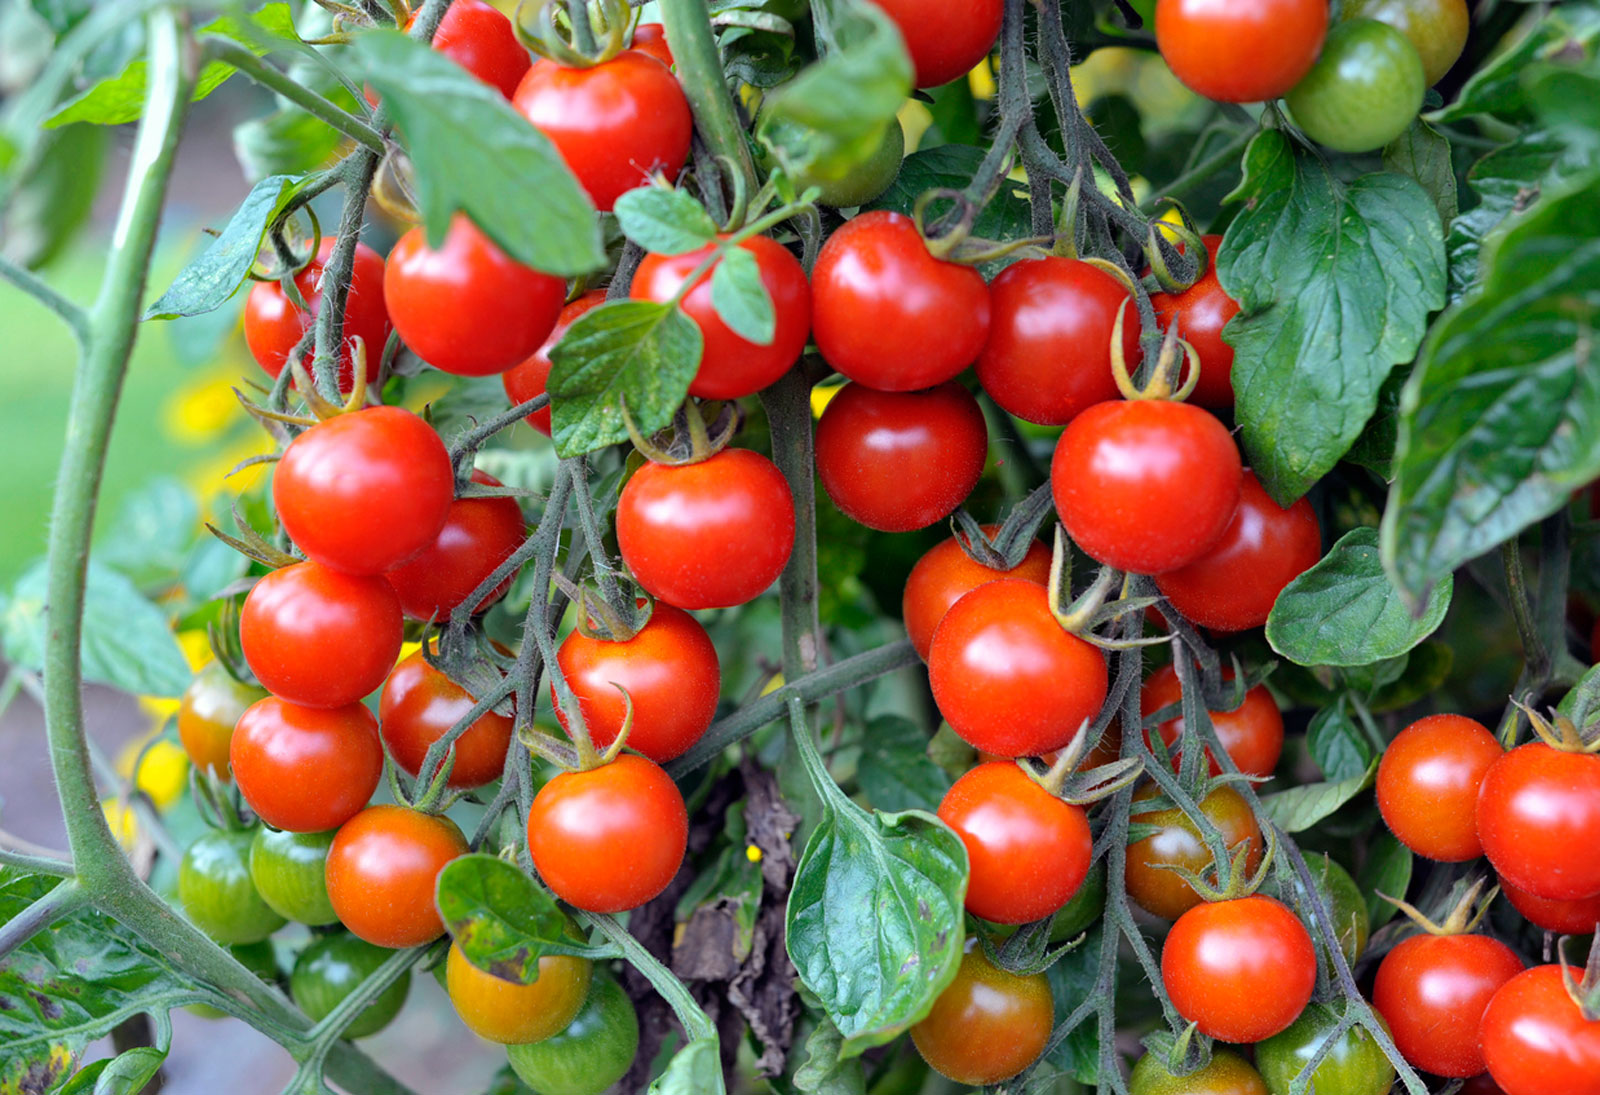 Planting Cherry Tomatoes How To Grow Cherry Tomatoes